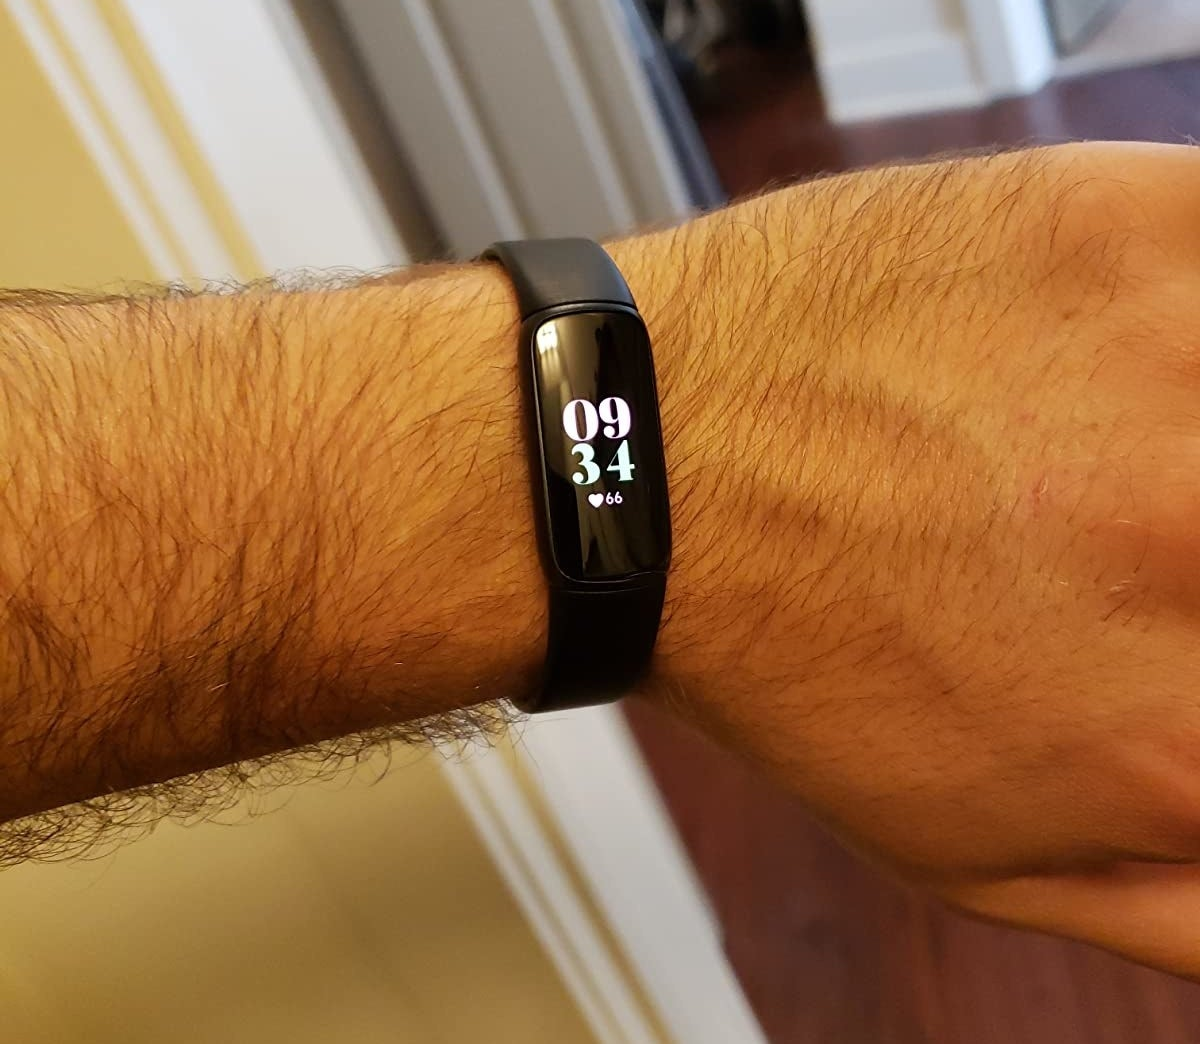 a reviewer's wrist wearing the FitBit